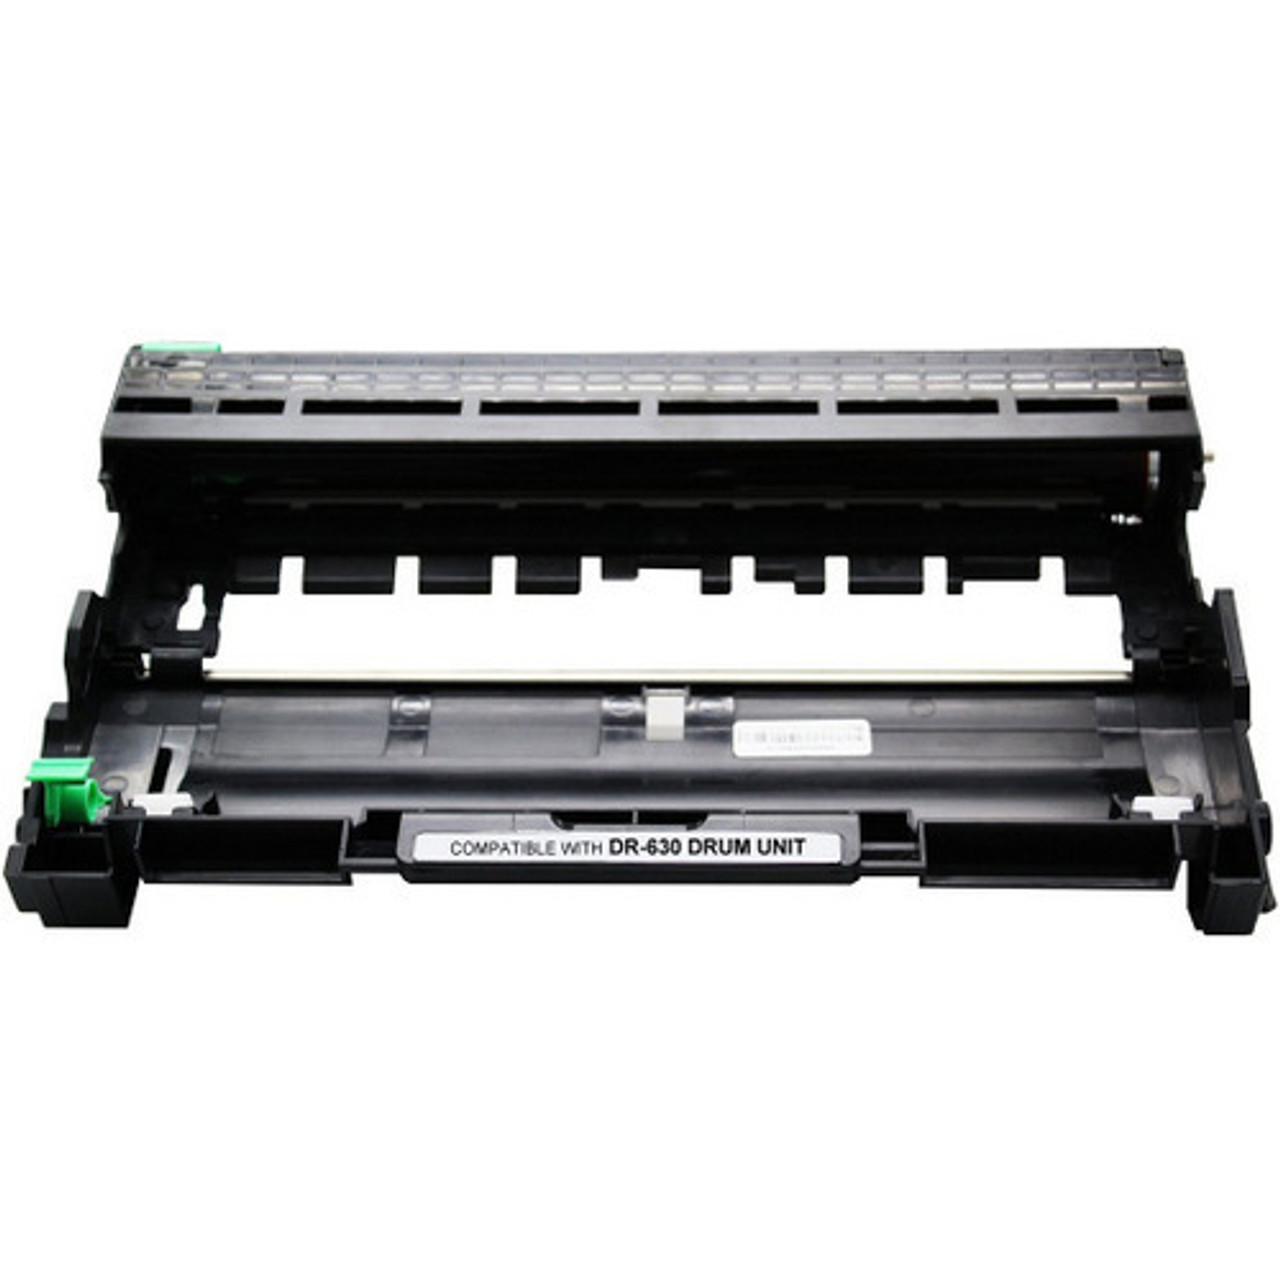 Black,1 Pack SuppliesOutlet Compatible Drum Unit Replacement for Brother DR630 to Use with MFC-L2720DW